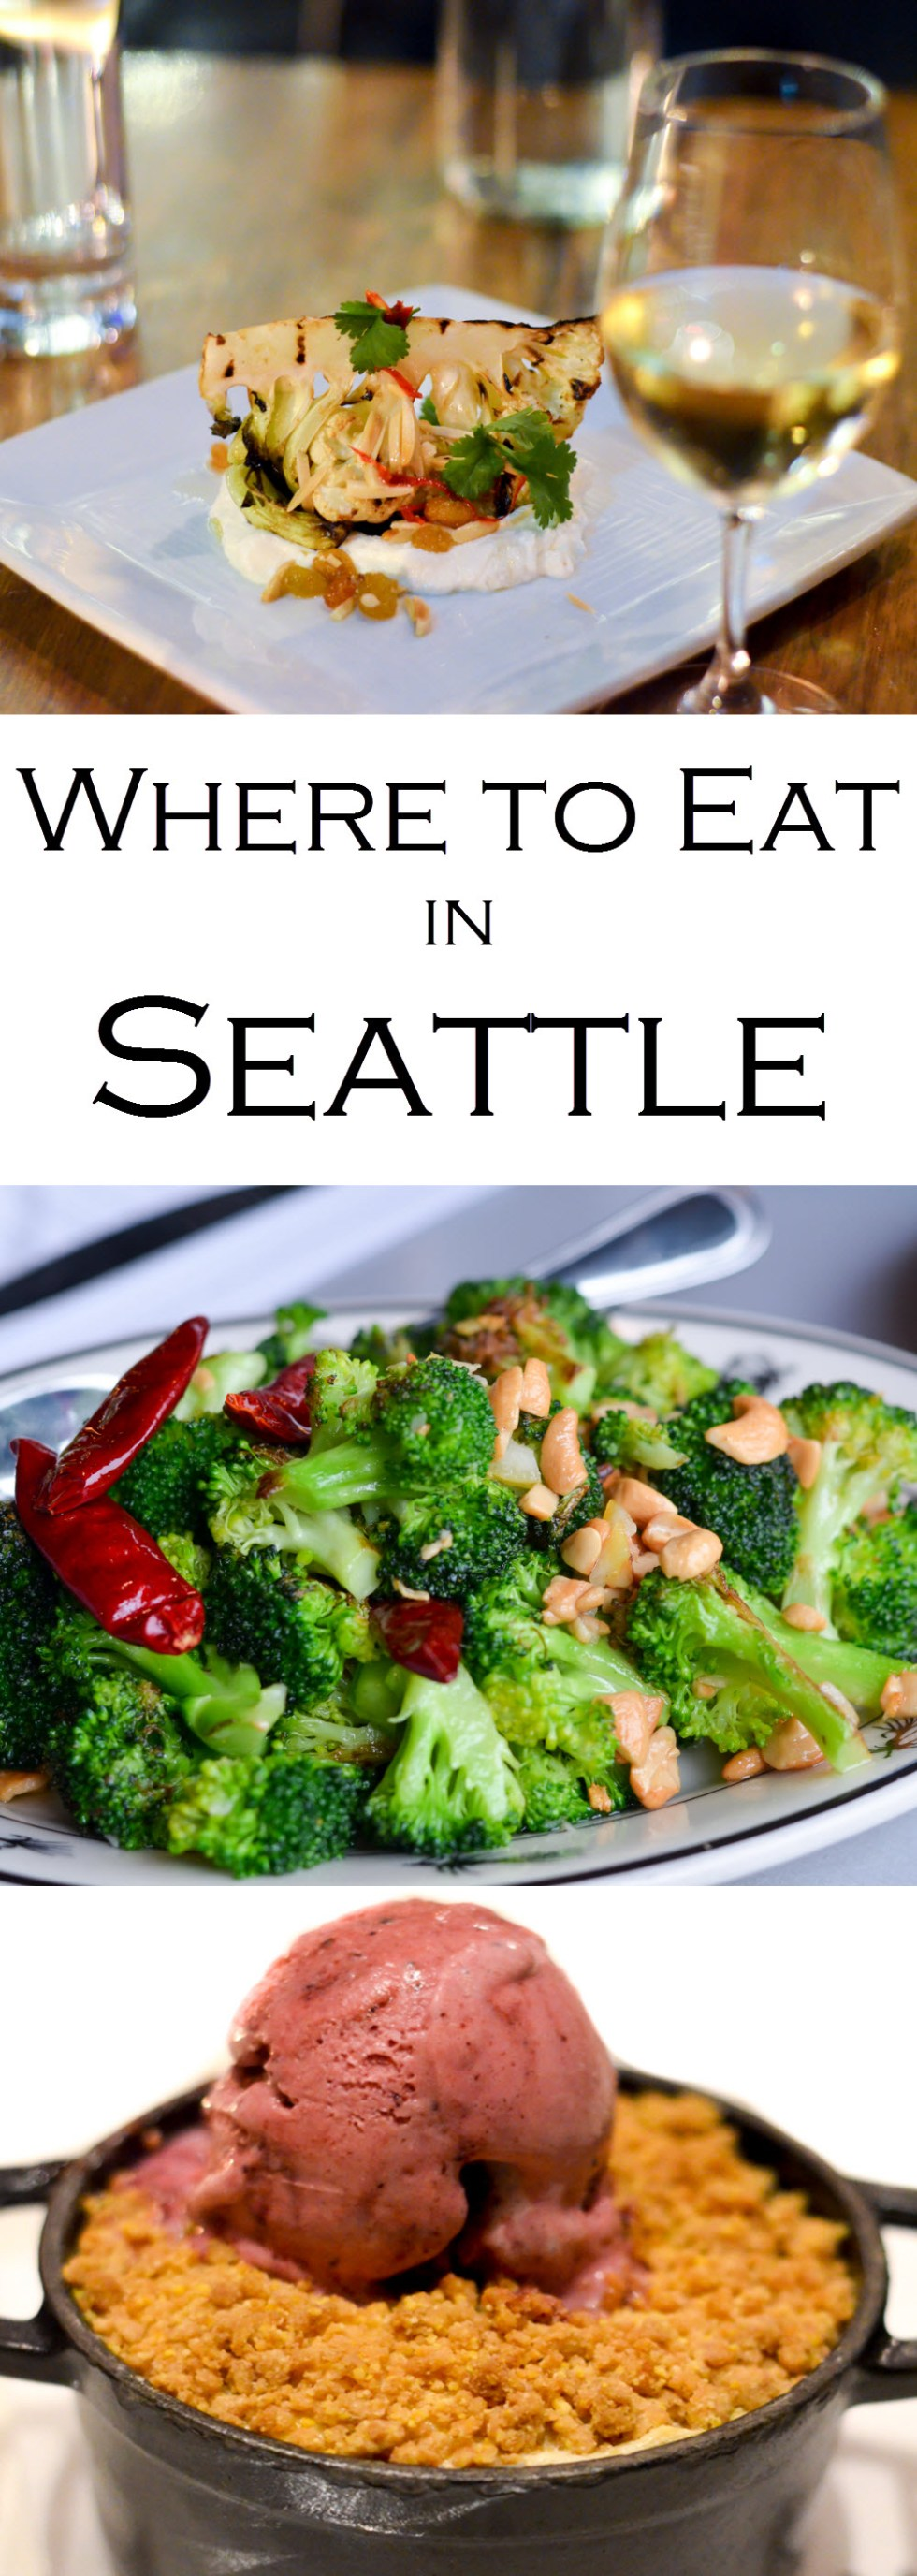 Where to Eat in Seattle   Food + Travel Blogger Recommendations